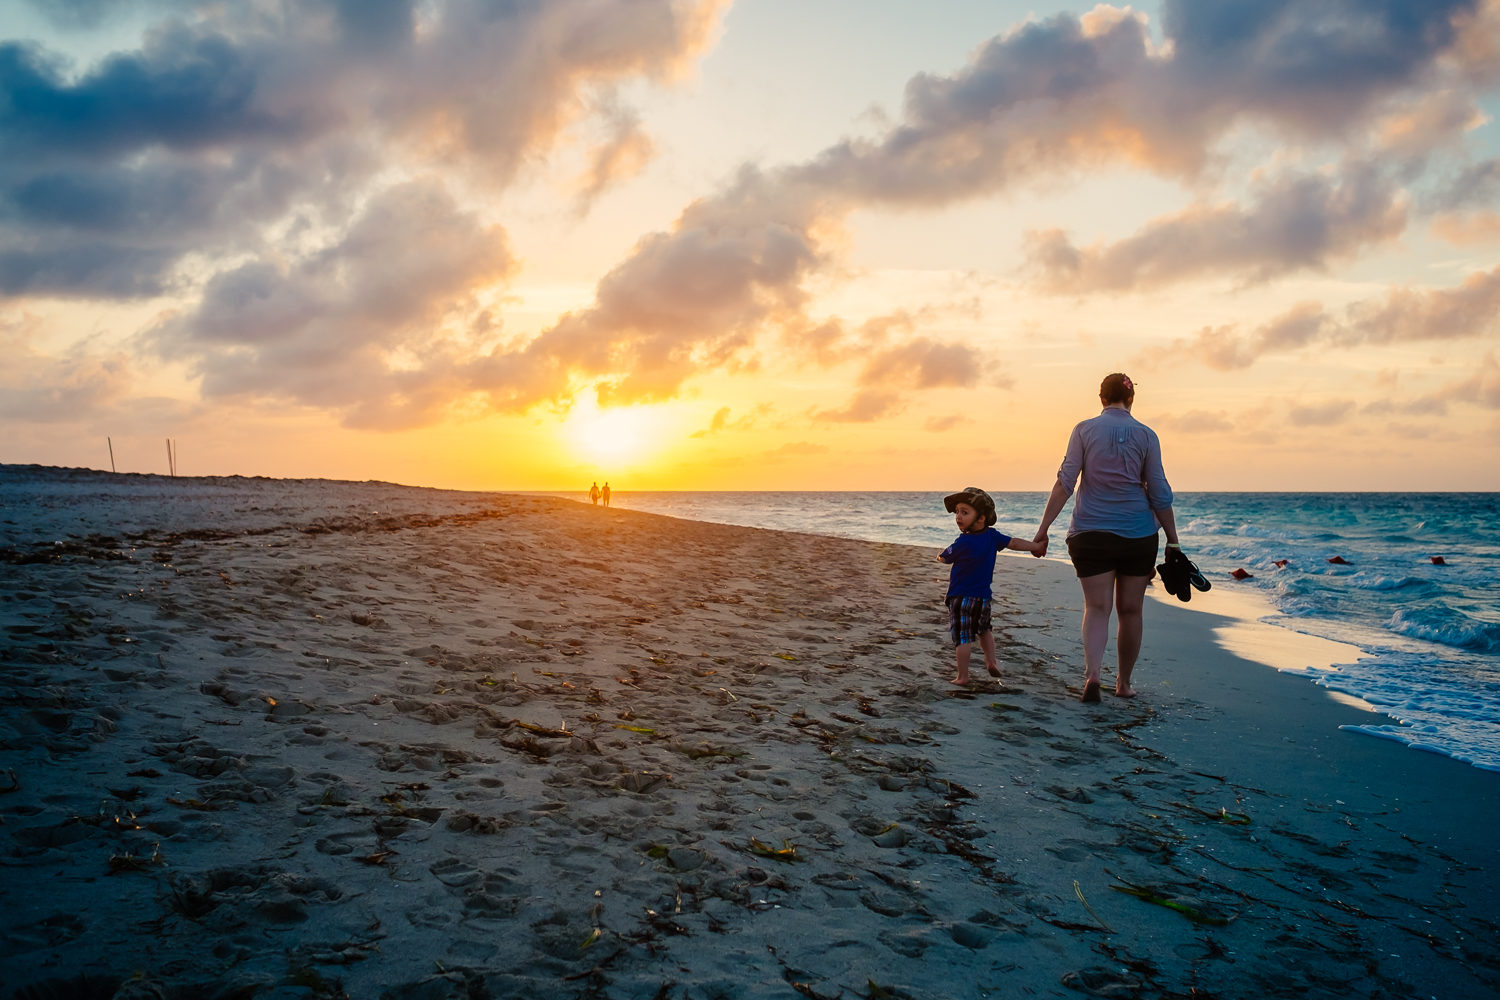 Mother and son enjoying a sunset walk on the beach in Varadero, Cuda 2015.